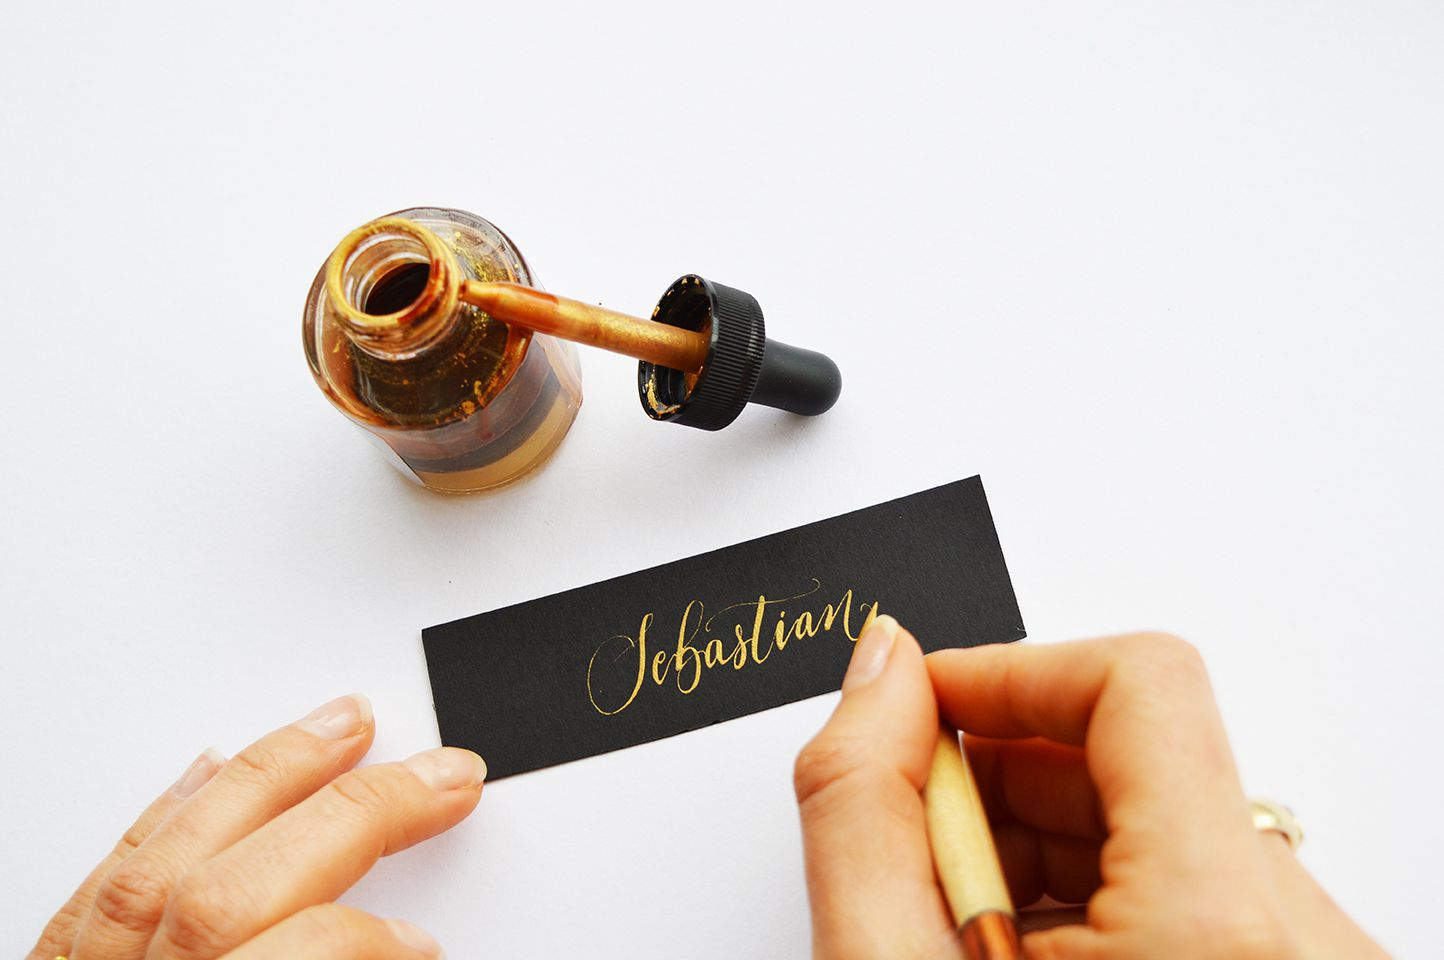 This Christmas, if you're either hosting a tea party or even dinner on the day itself, make your guests feel extra special by creating eye-catching place cards. We asked our friends at Quill London to share their hints and tips about the art of calligraphy – plus how to use the art of calligraphy to make those fancy festive place cards.